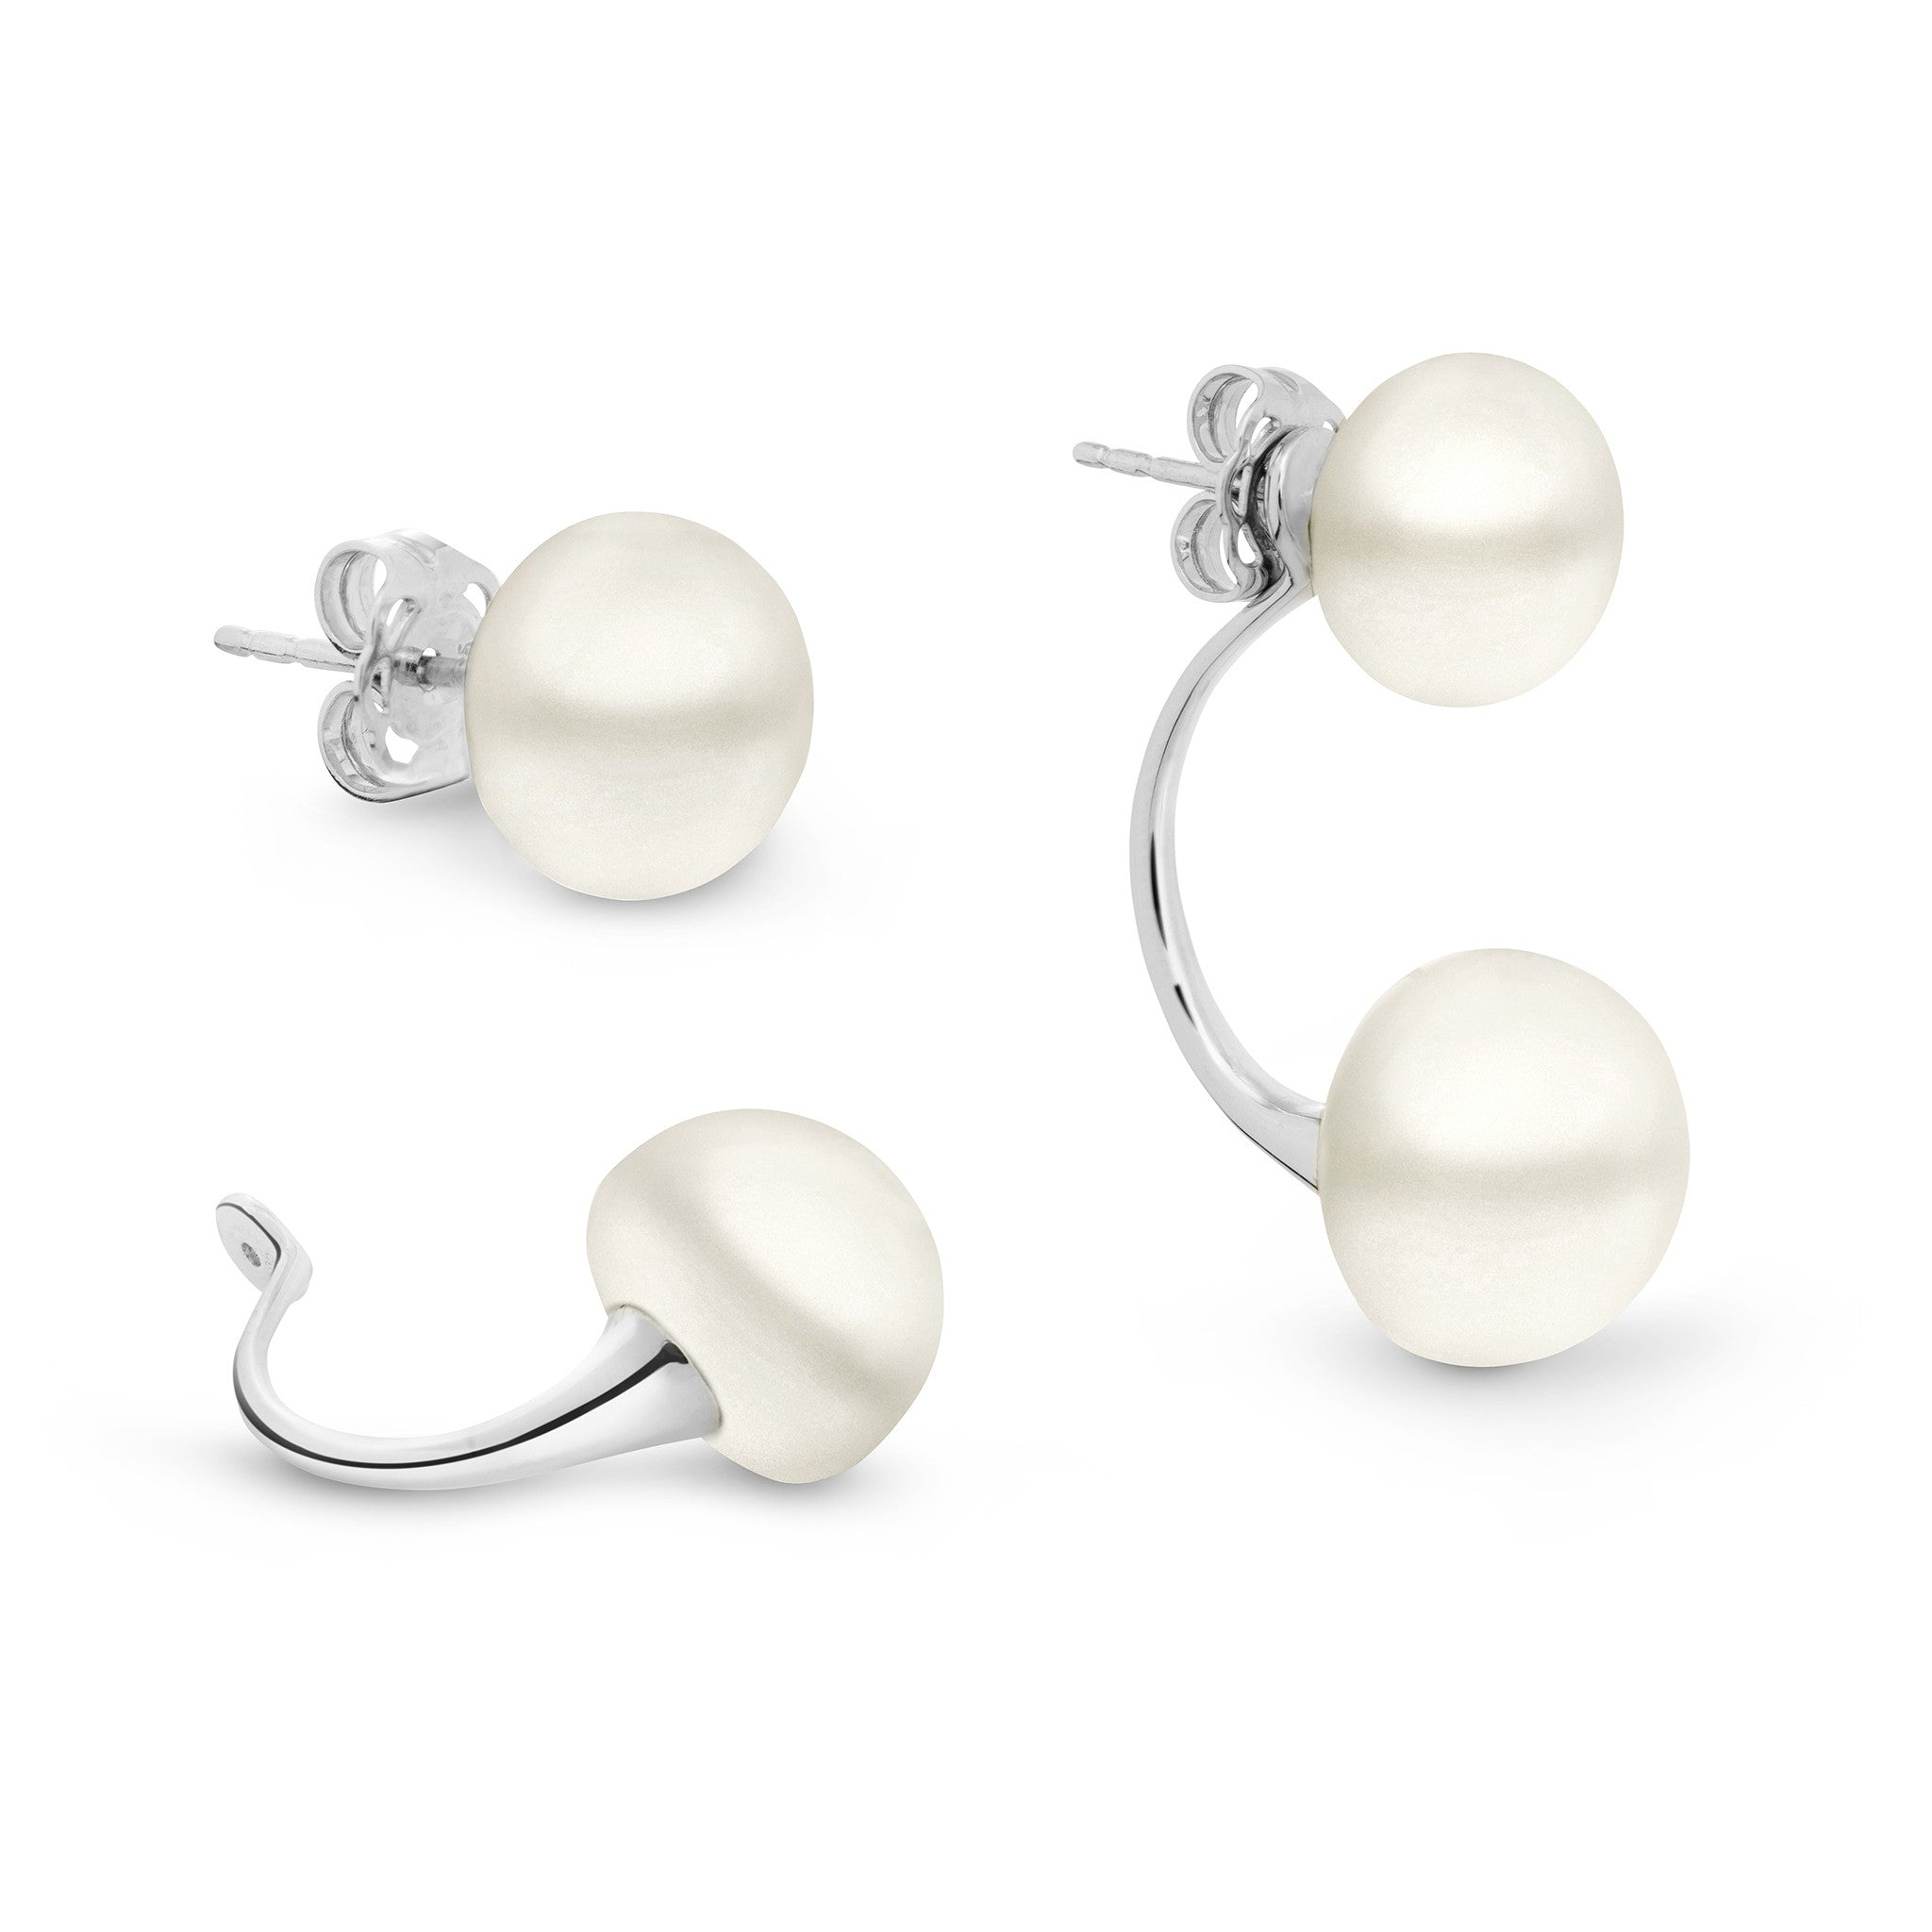 mikimoto jewelry cultured no earrings gold product normal stud color white lyst akoya pearl gallery